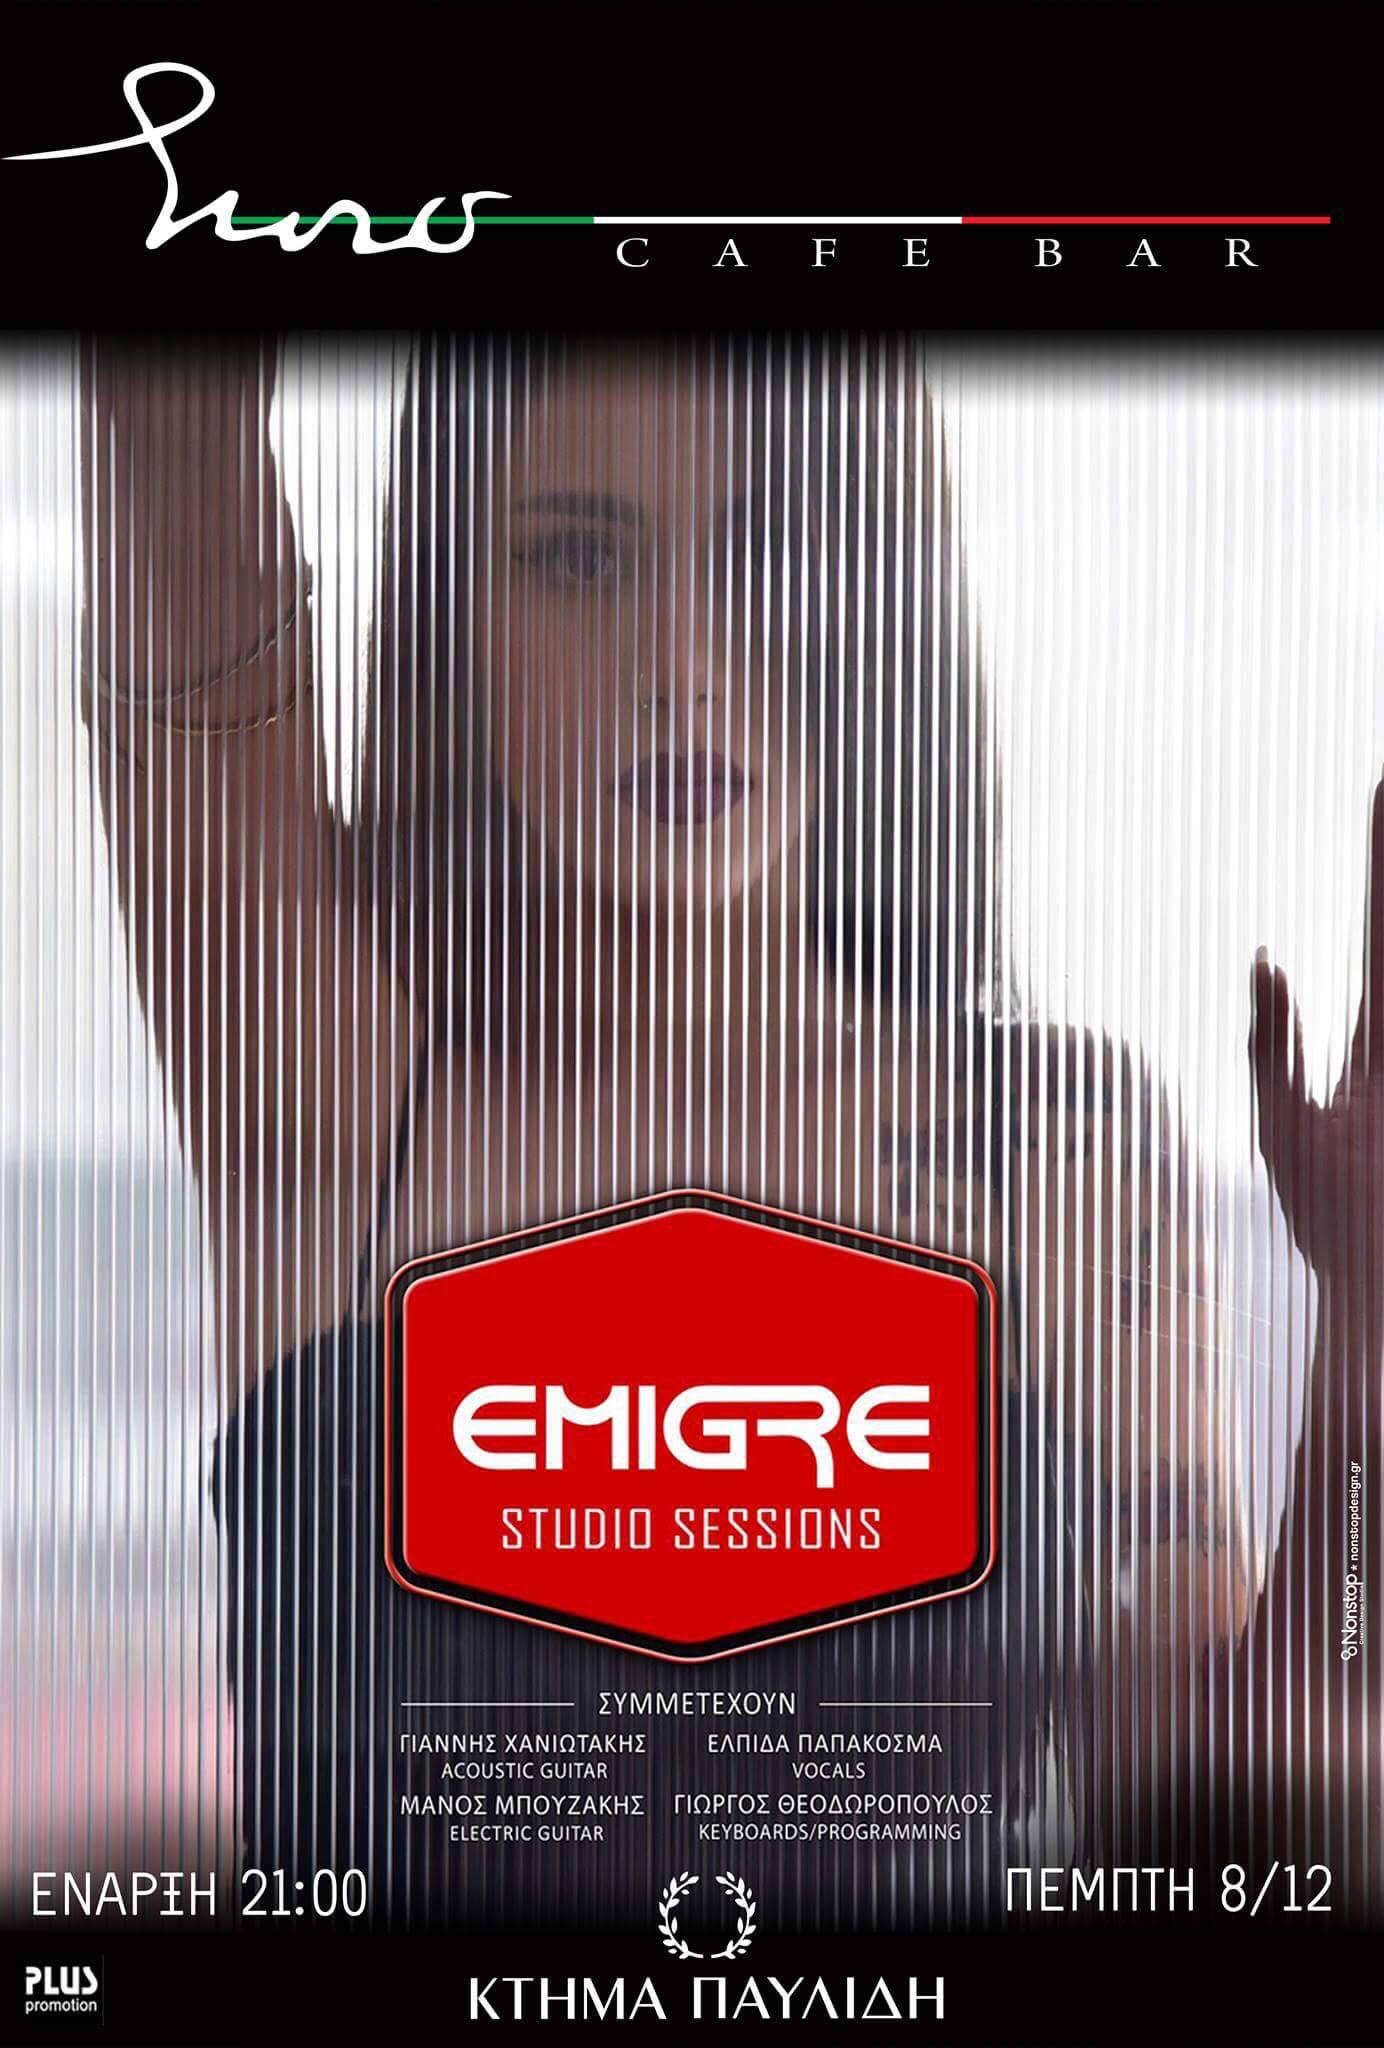 emigre-studio-sessions-enzo-bar-drama-poster